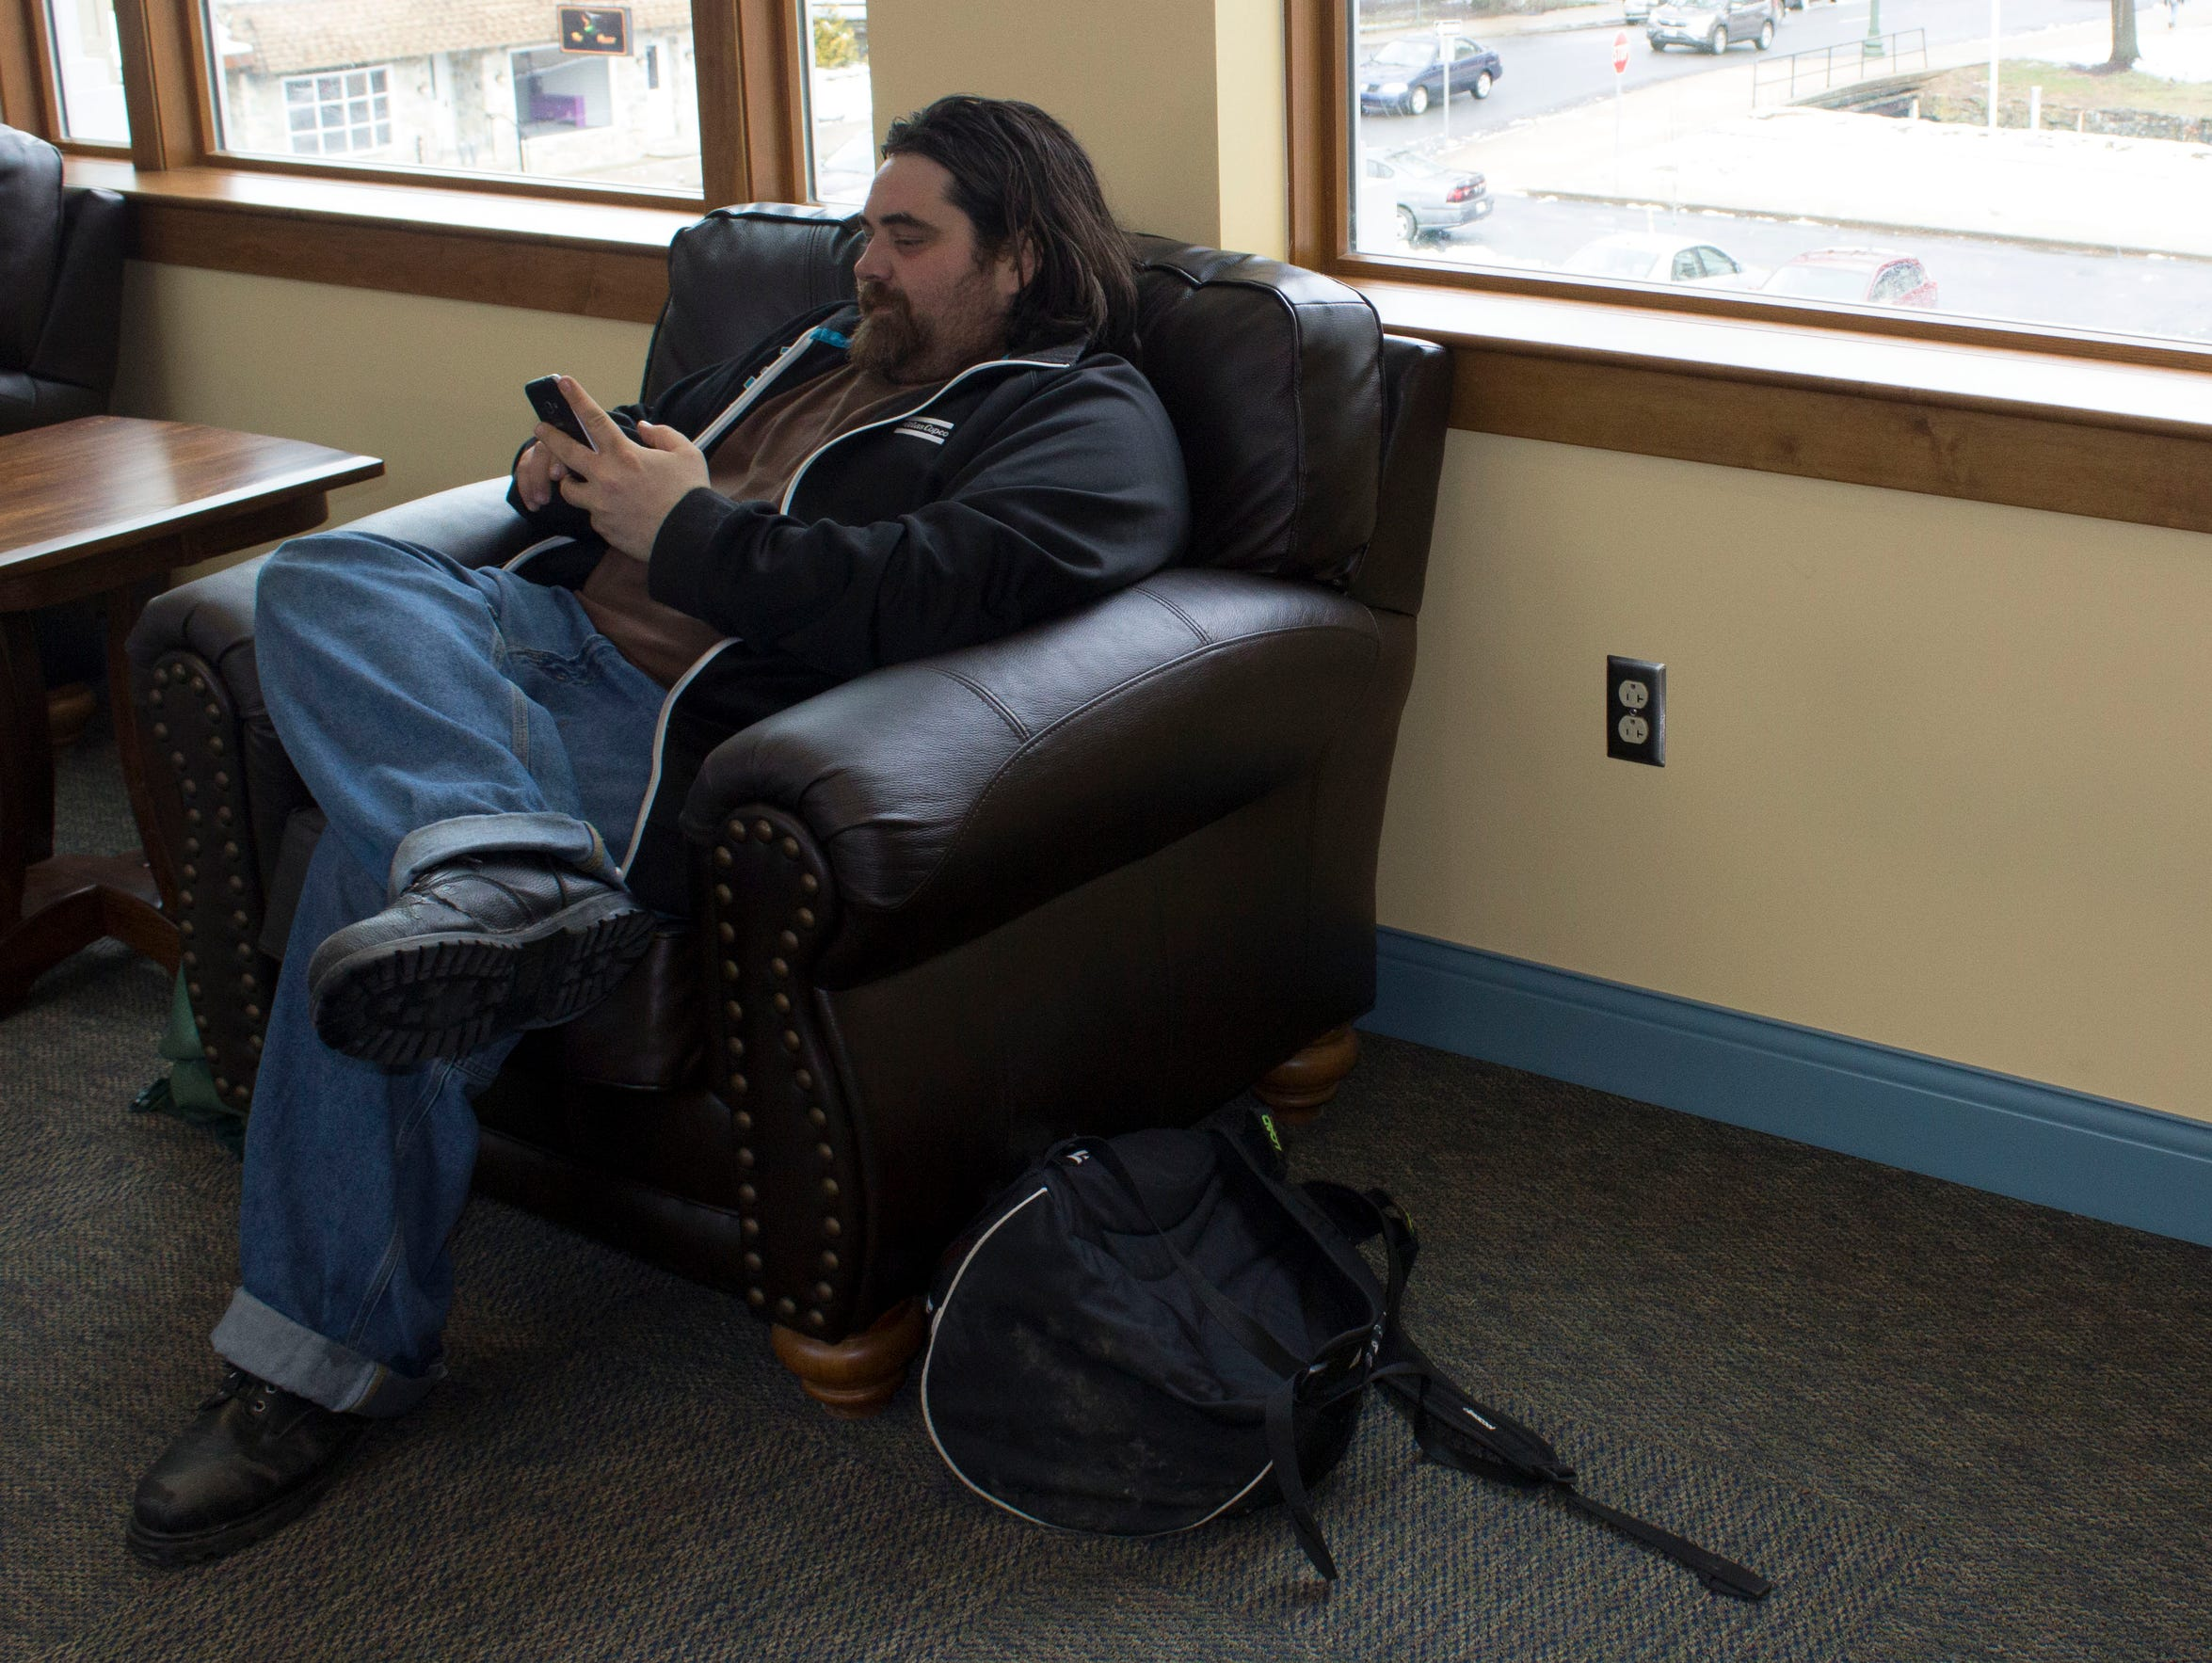 Jason Davies, 34, sits on a chair and plays on his